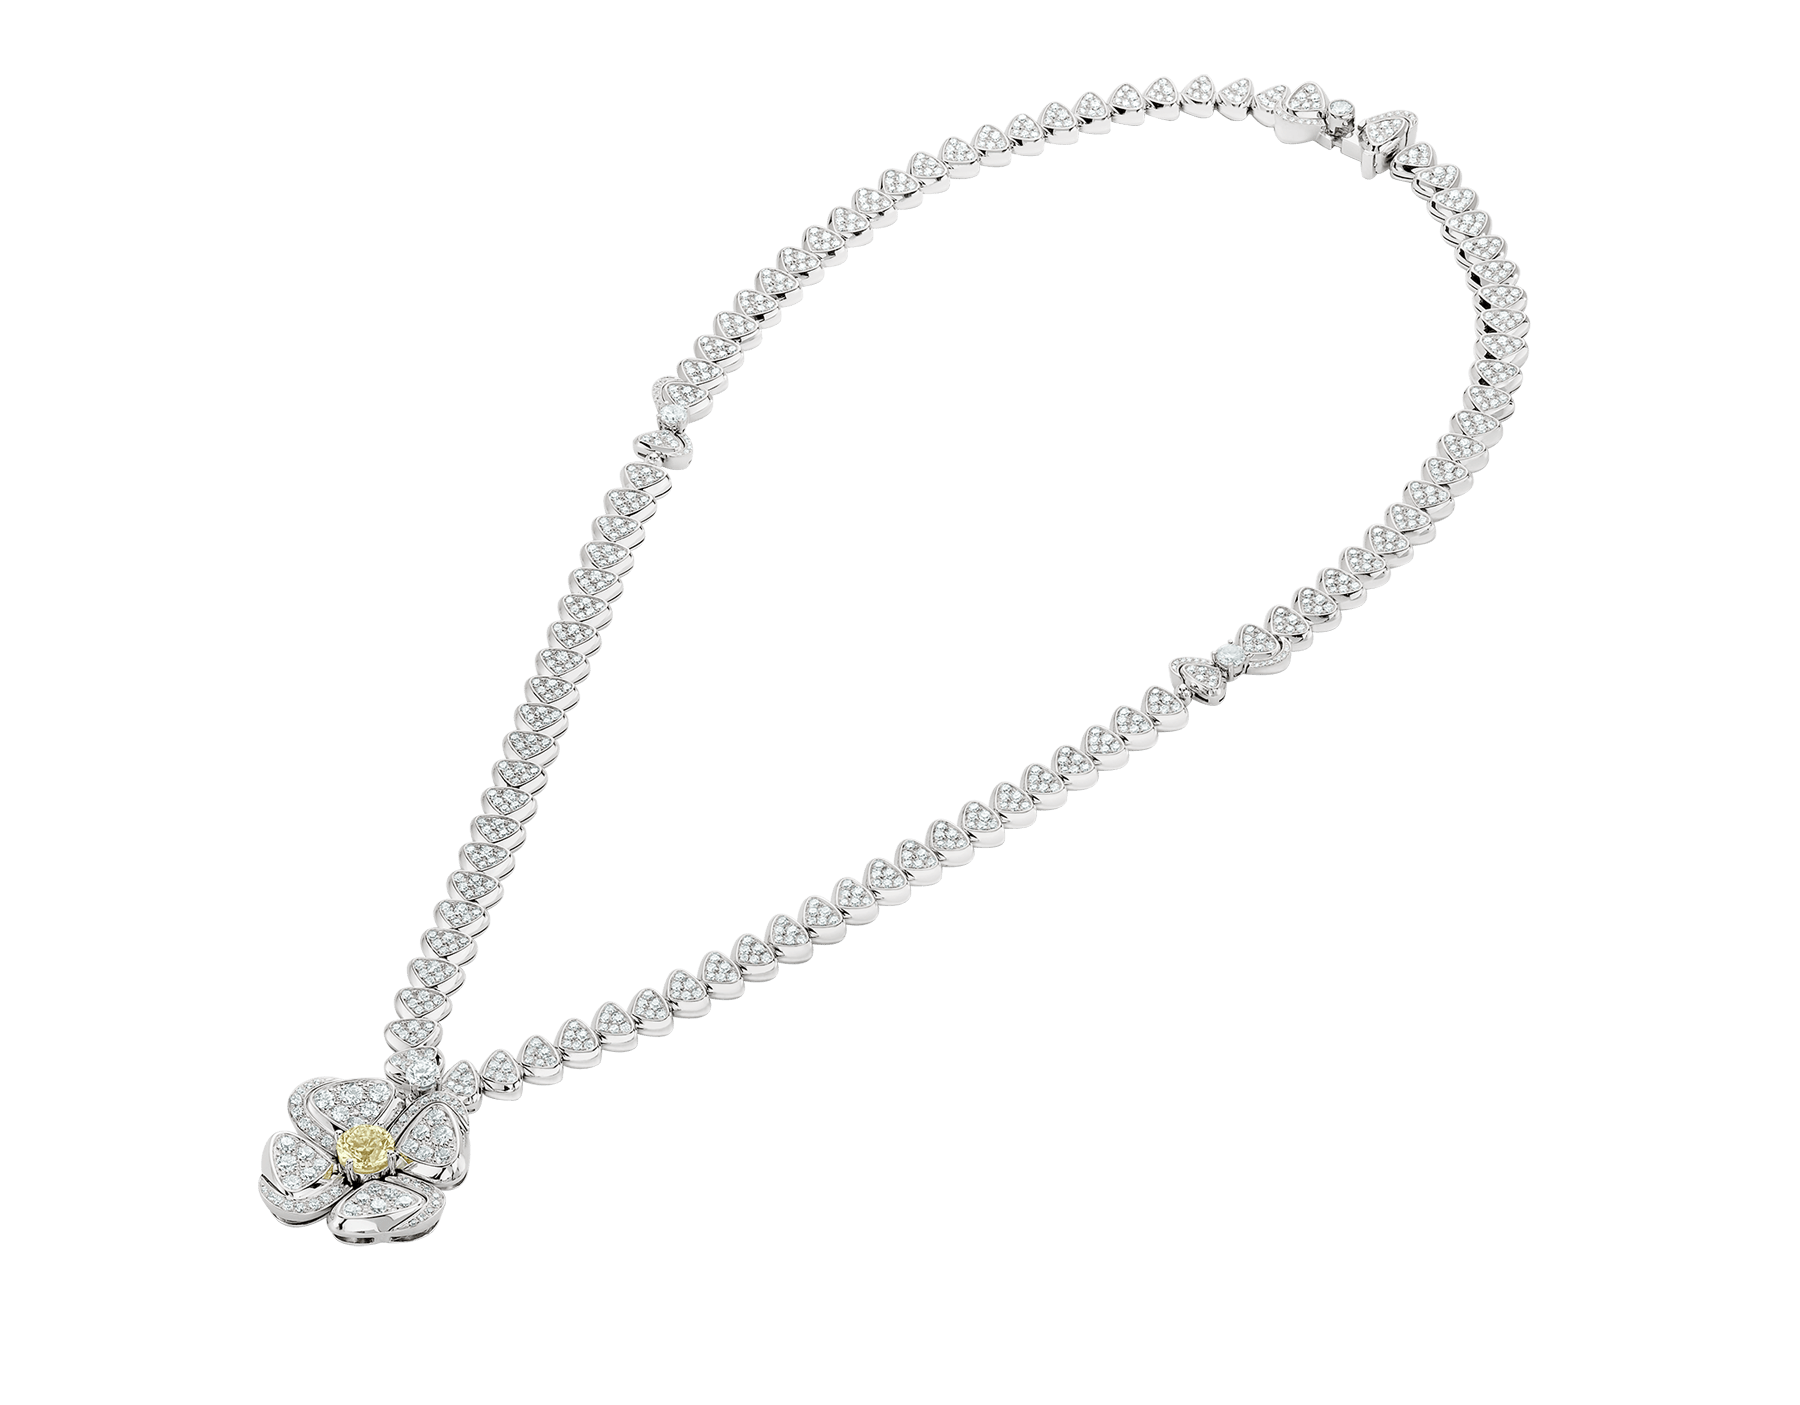 Fiorever 18 kt white gold necklace set with one central yellow diamond (0.50 ct) and pavé diamonds 357797 image 2